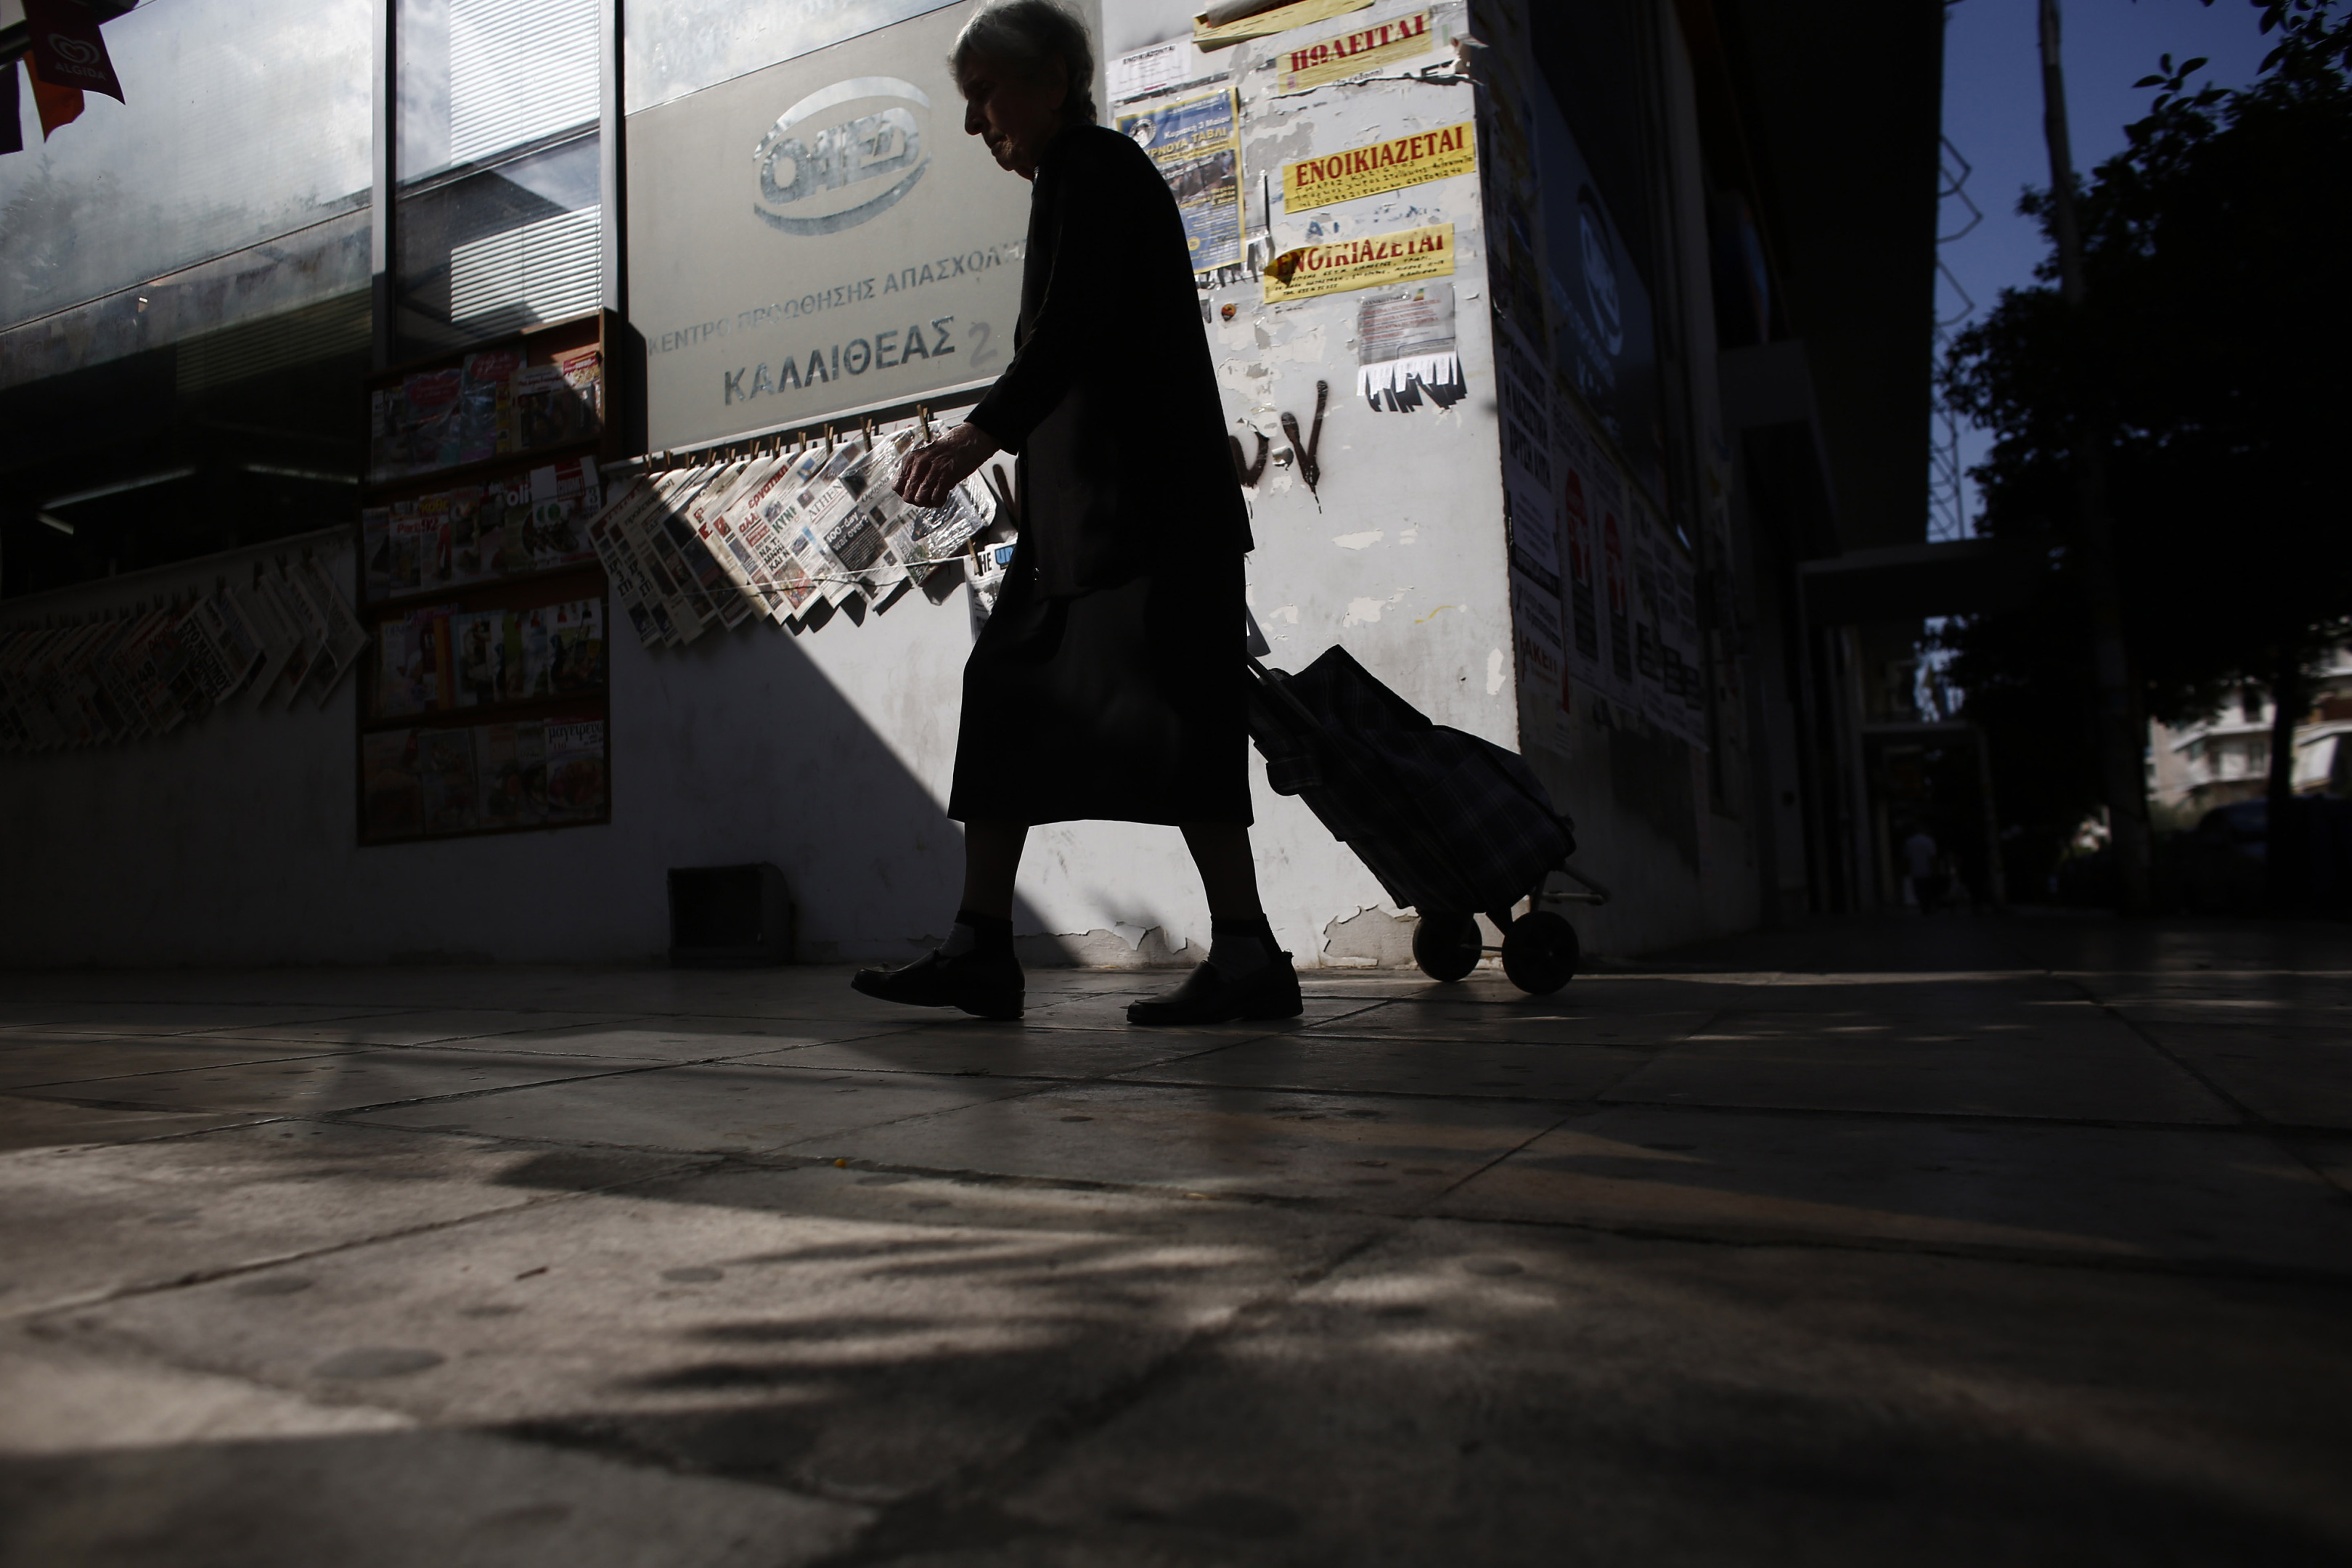 bloomberg.com - Antonis Galanopoulos - Greeks Retirees Are Moving to One of Europe's Poorest Countries